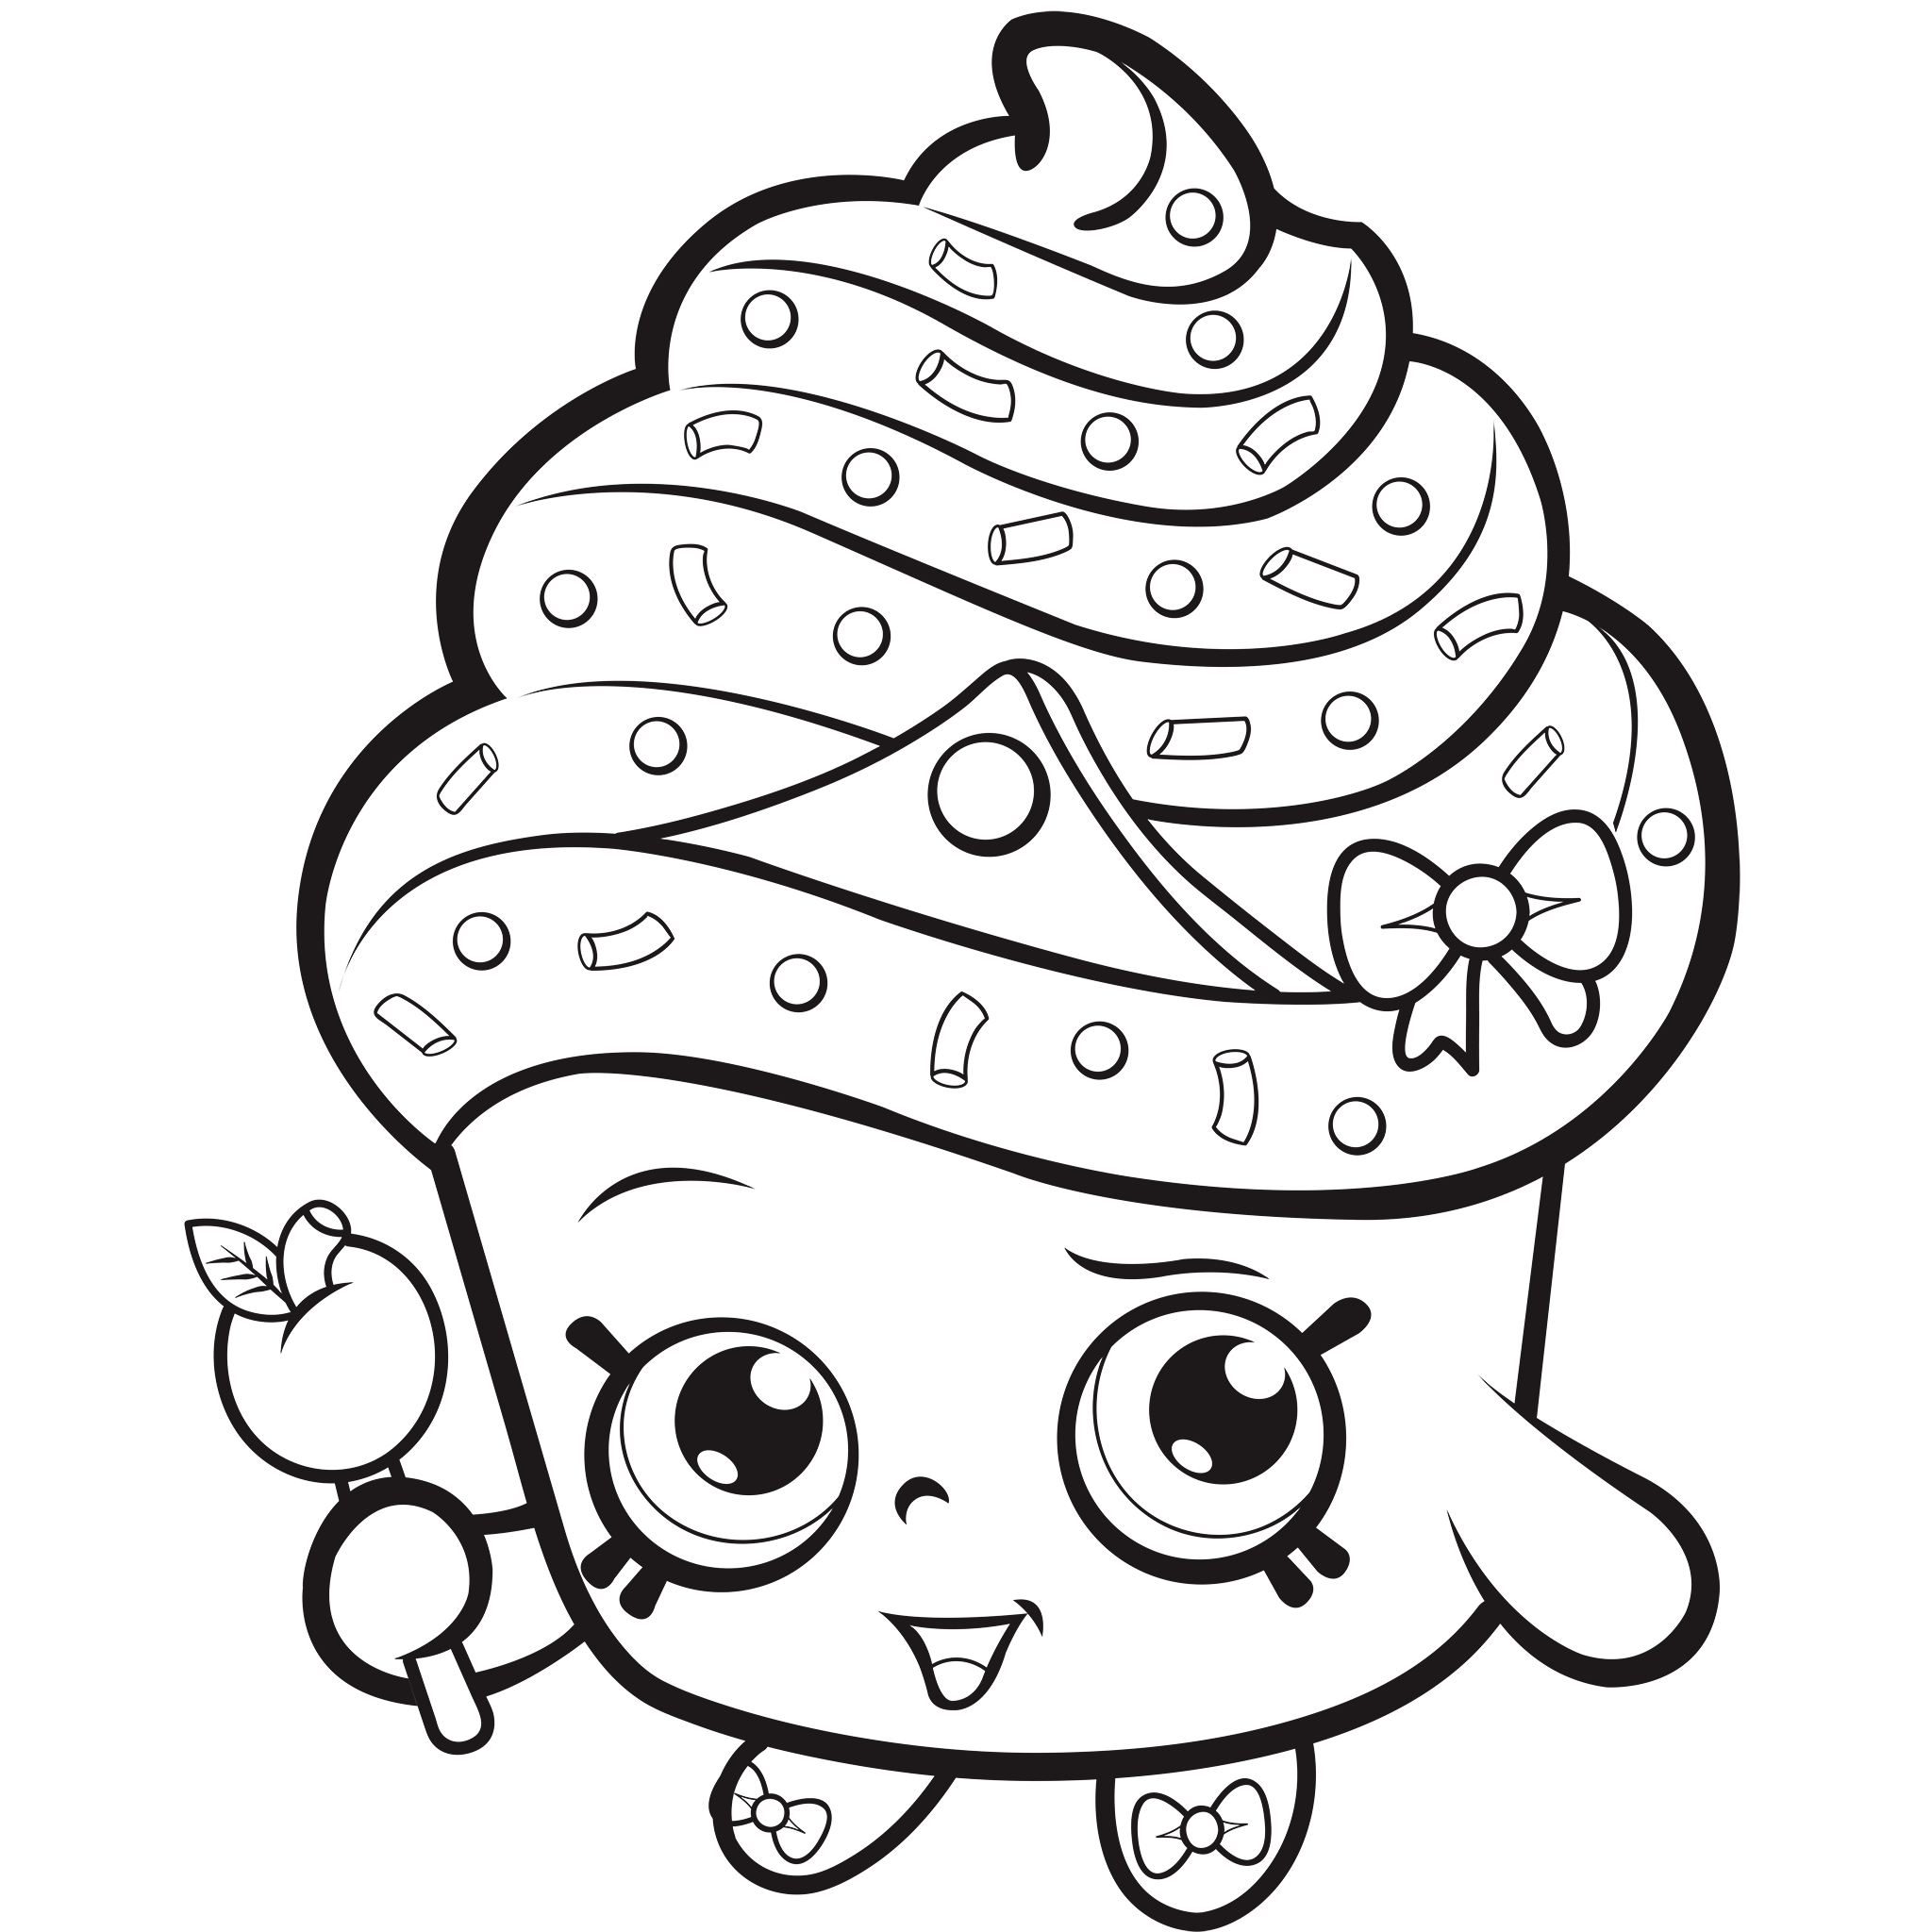 coloring pages shopkin shopkins coloring pages best coloring pages for kids shopkin coloring pages 1 3